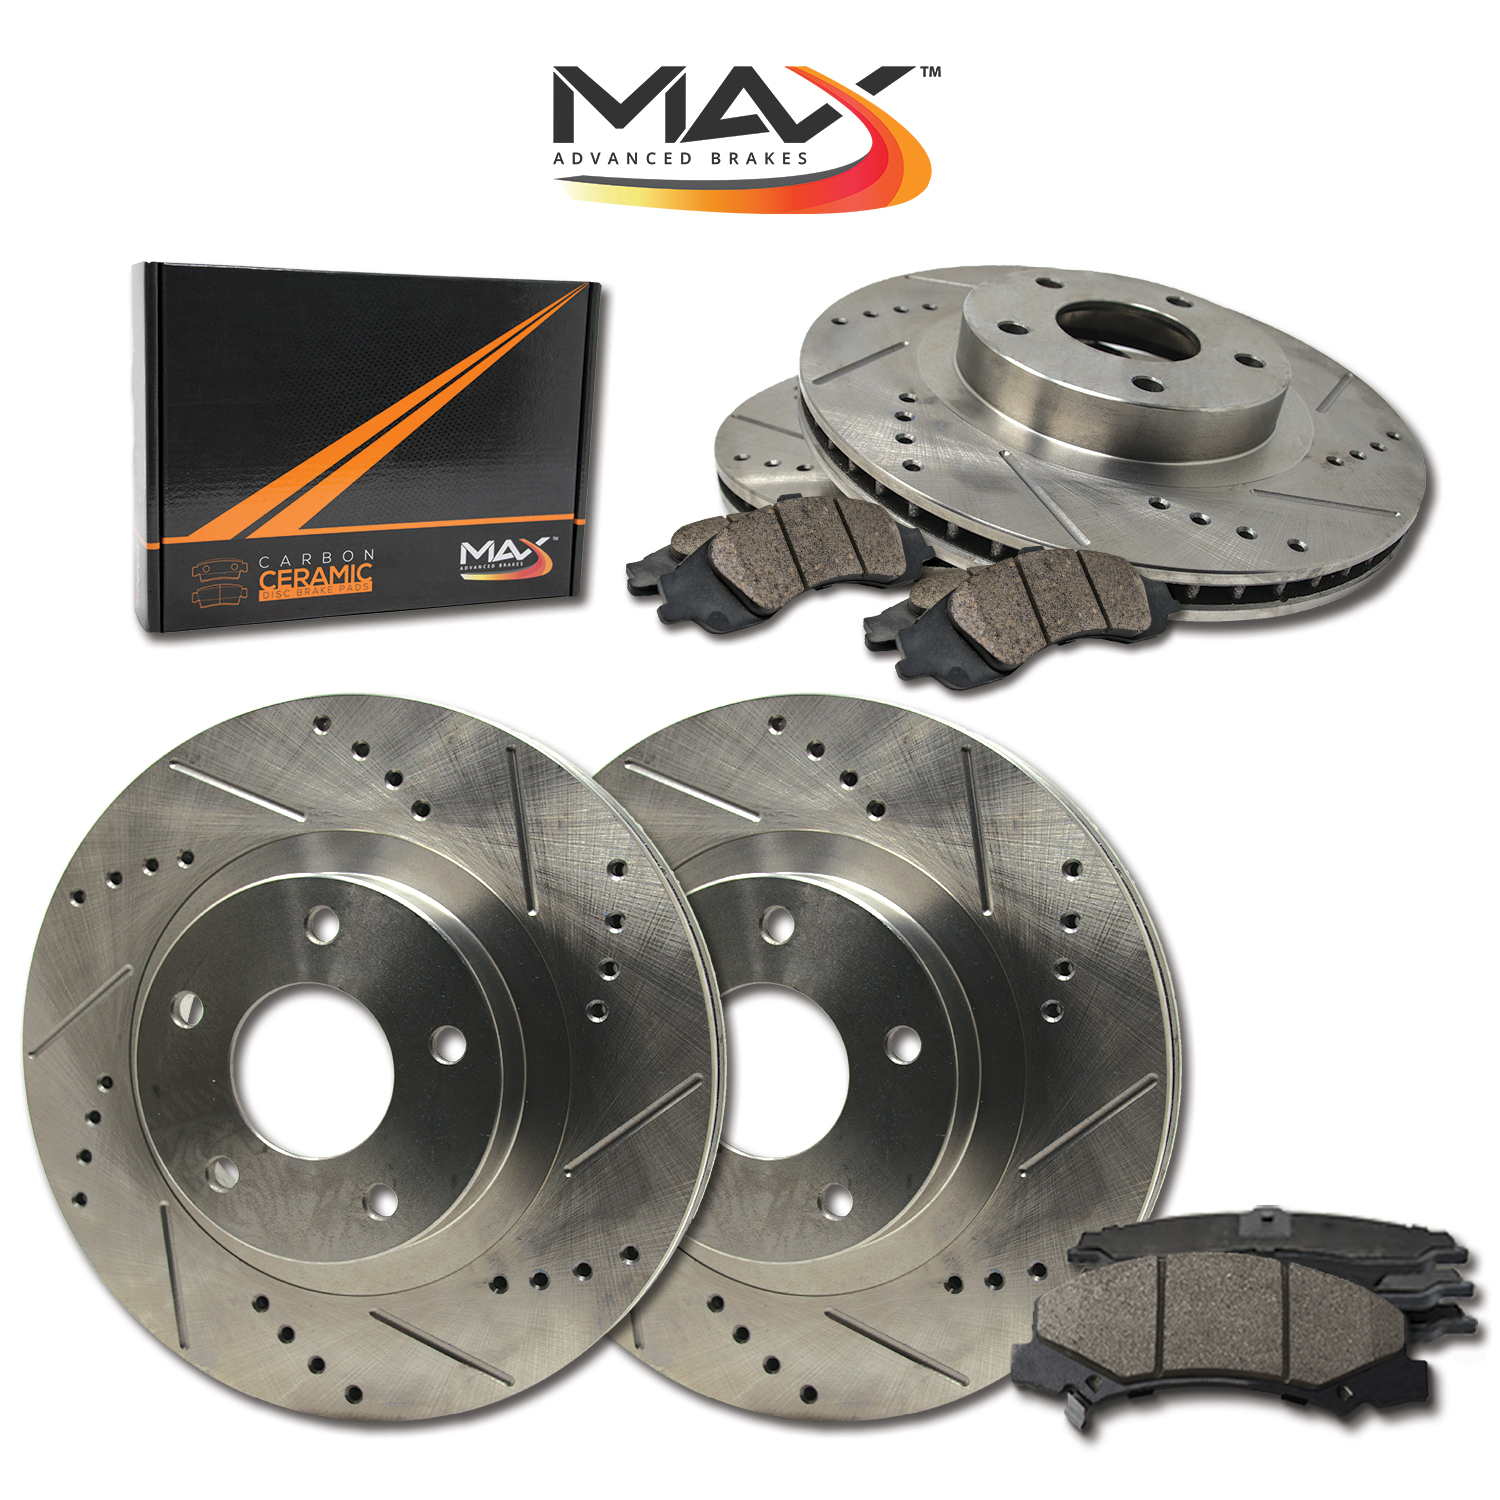 KT143743 OE Series Rotors + Ceramic Pads Max Brakes Front /& Rear Premium Brake Kit Fits: 2001 01 2002 02 Dodge Ram 2500HD